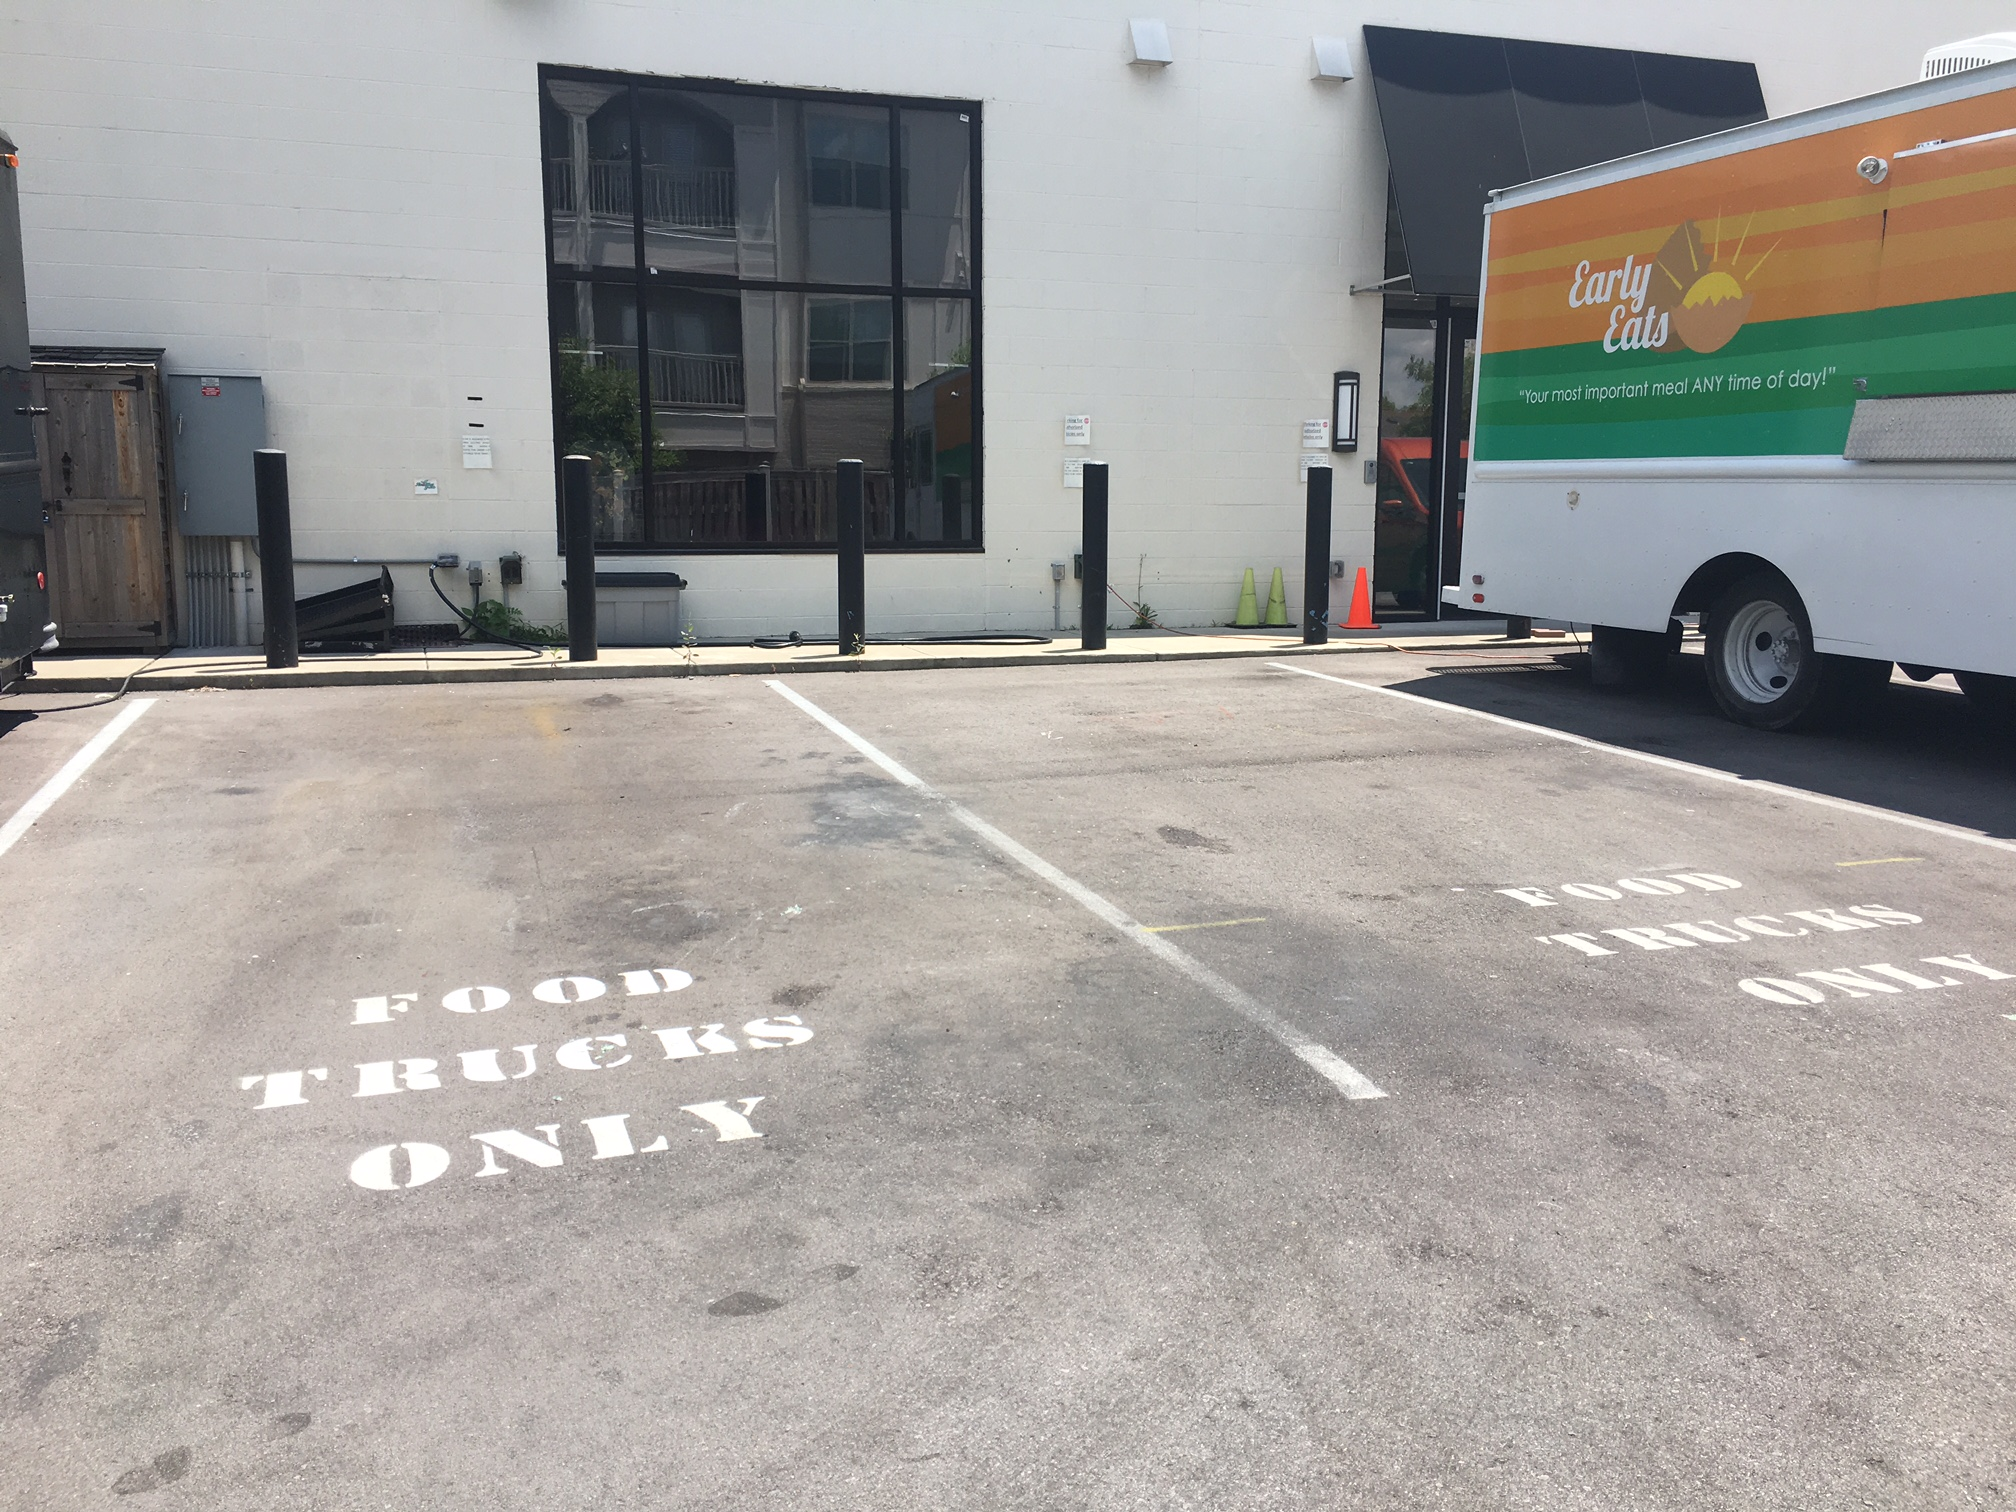 Food truck parking